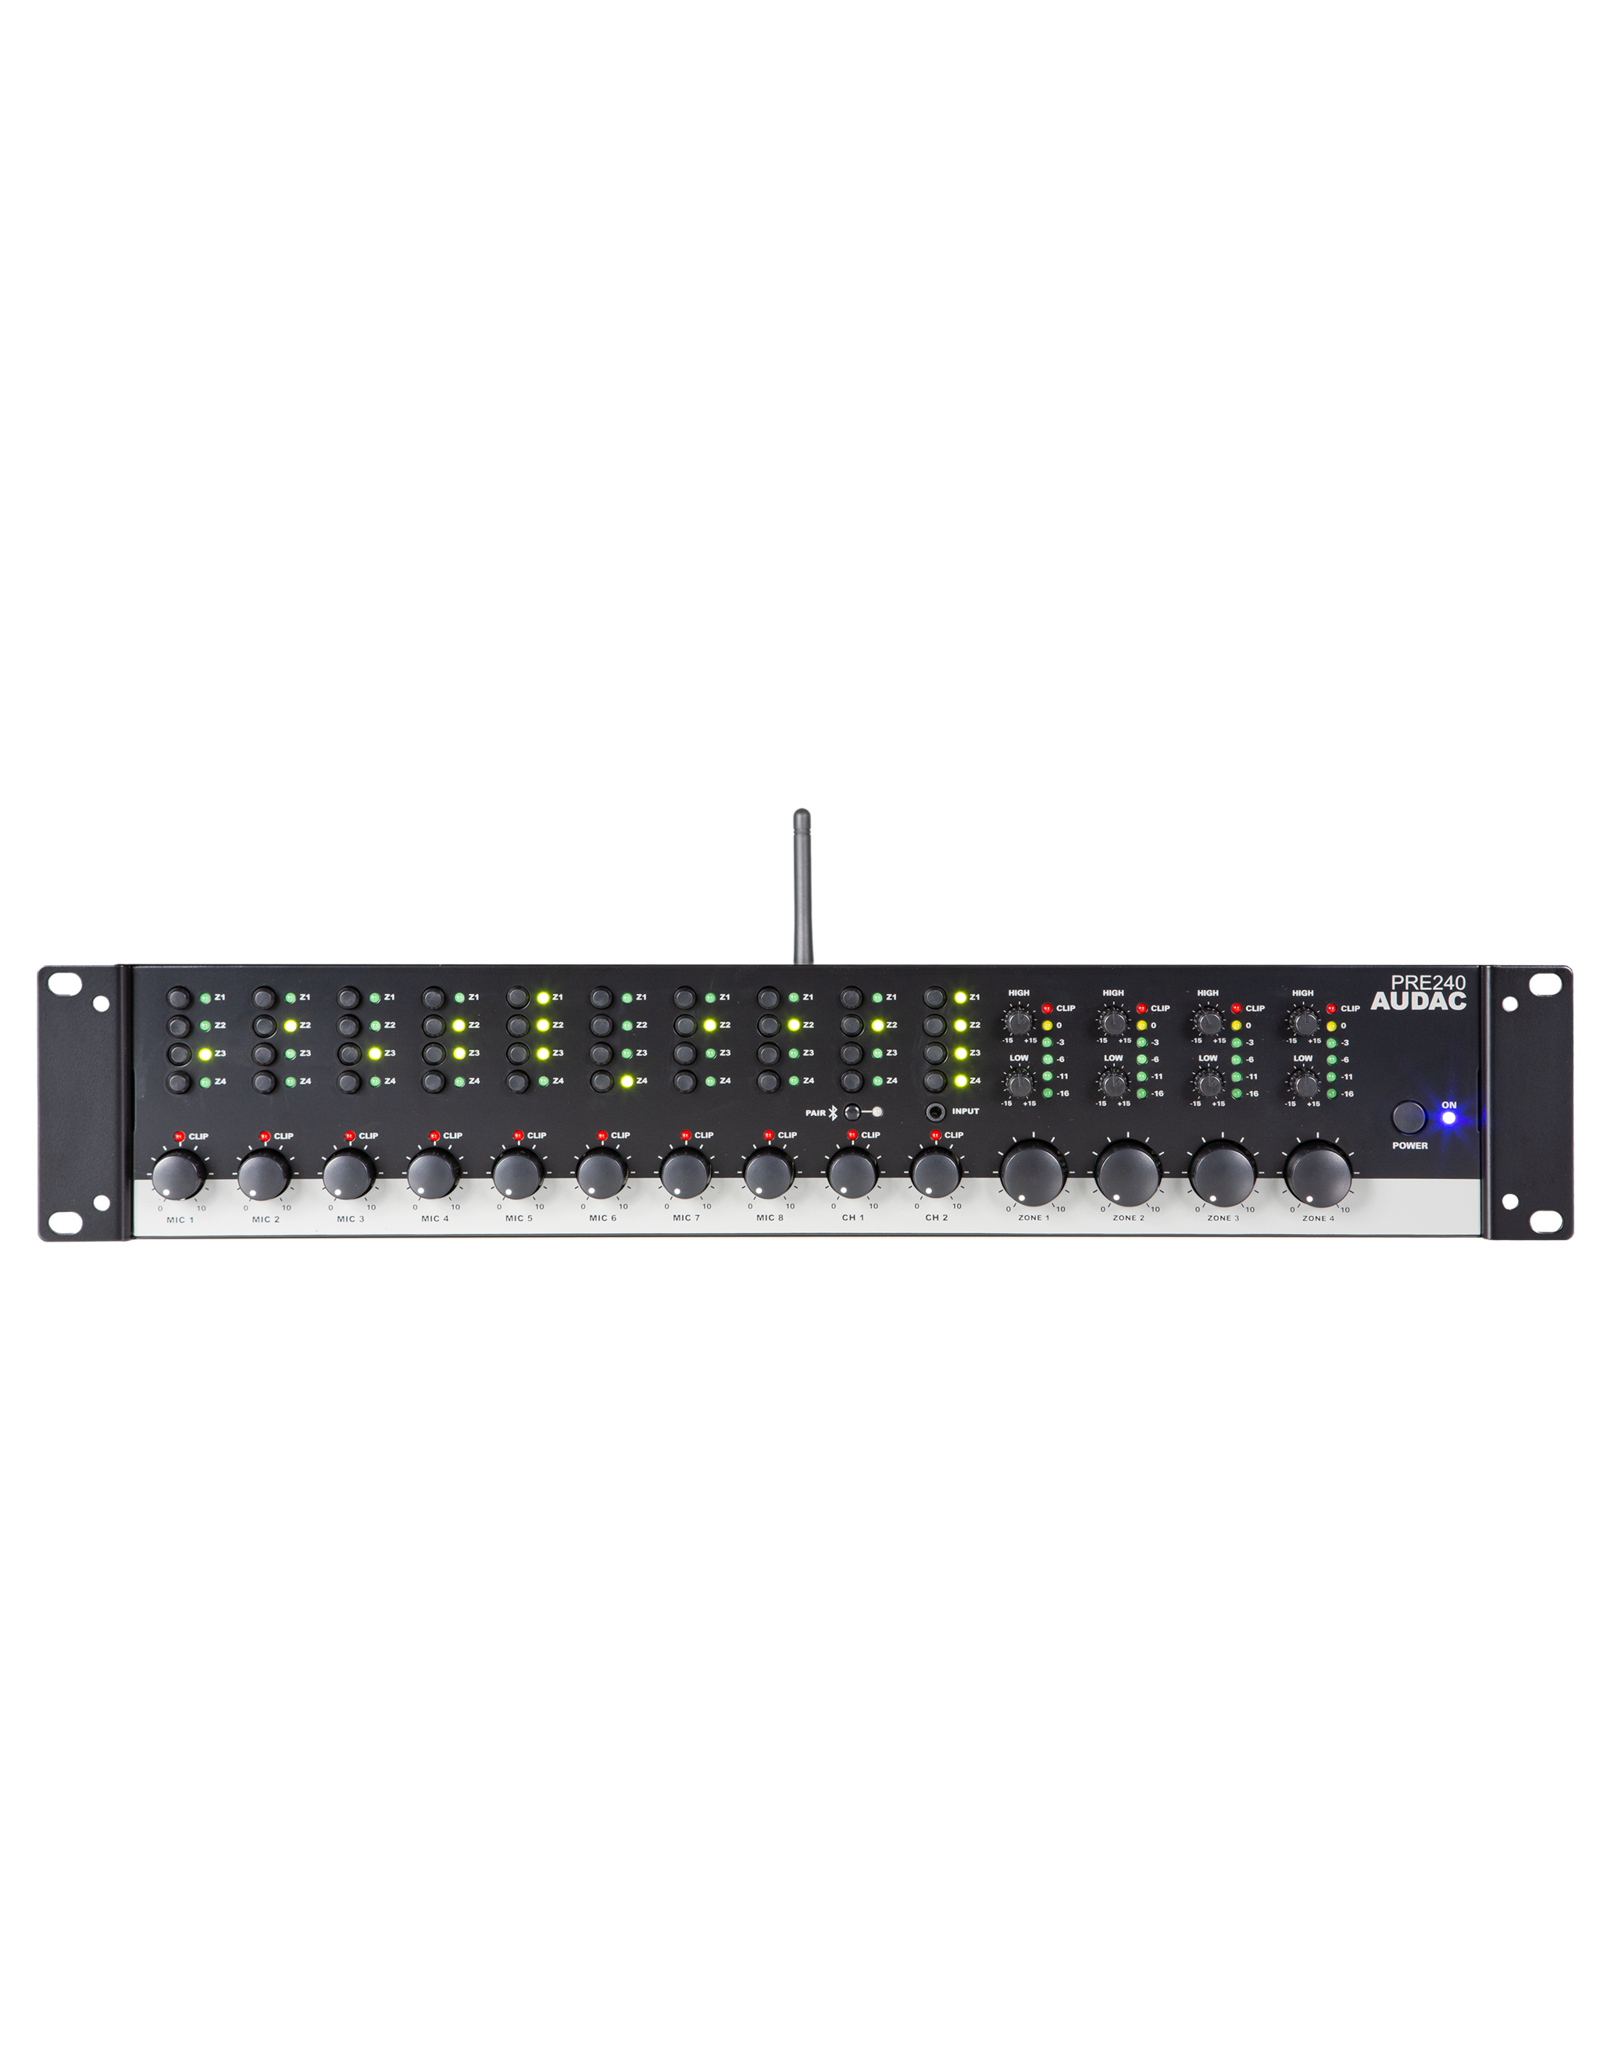 Audac Four zone - 10 Channel stereo preamplifier